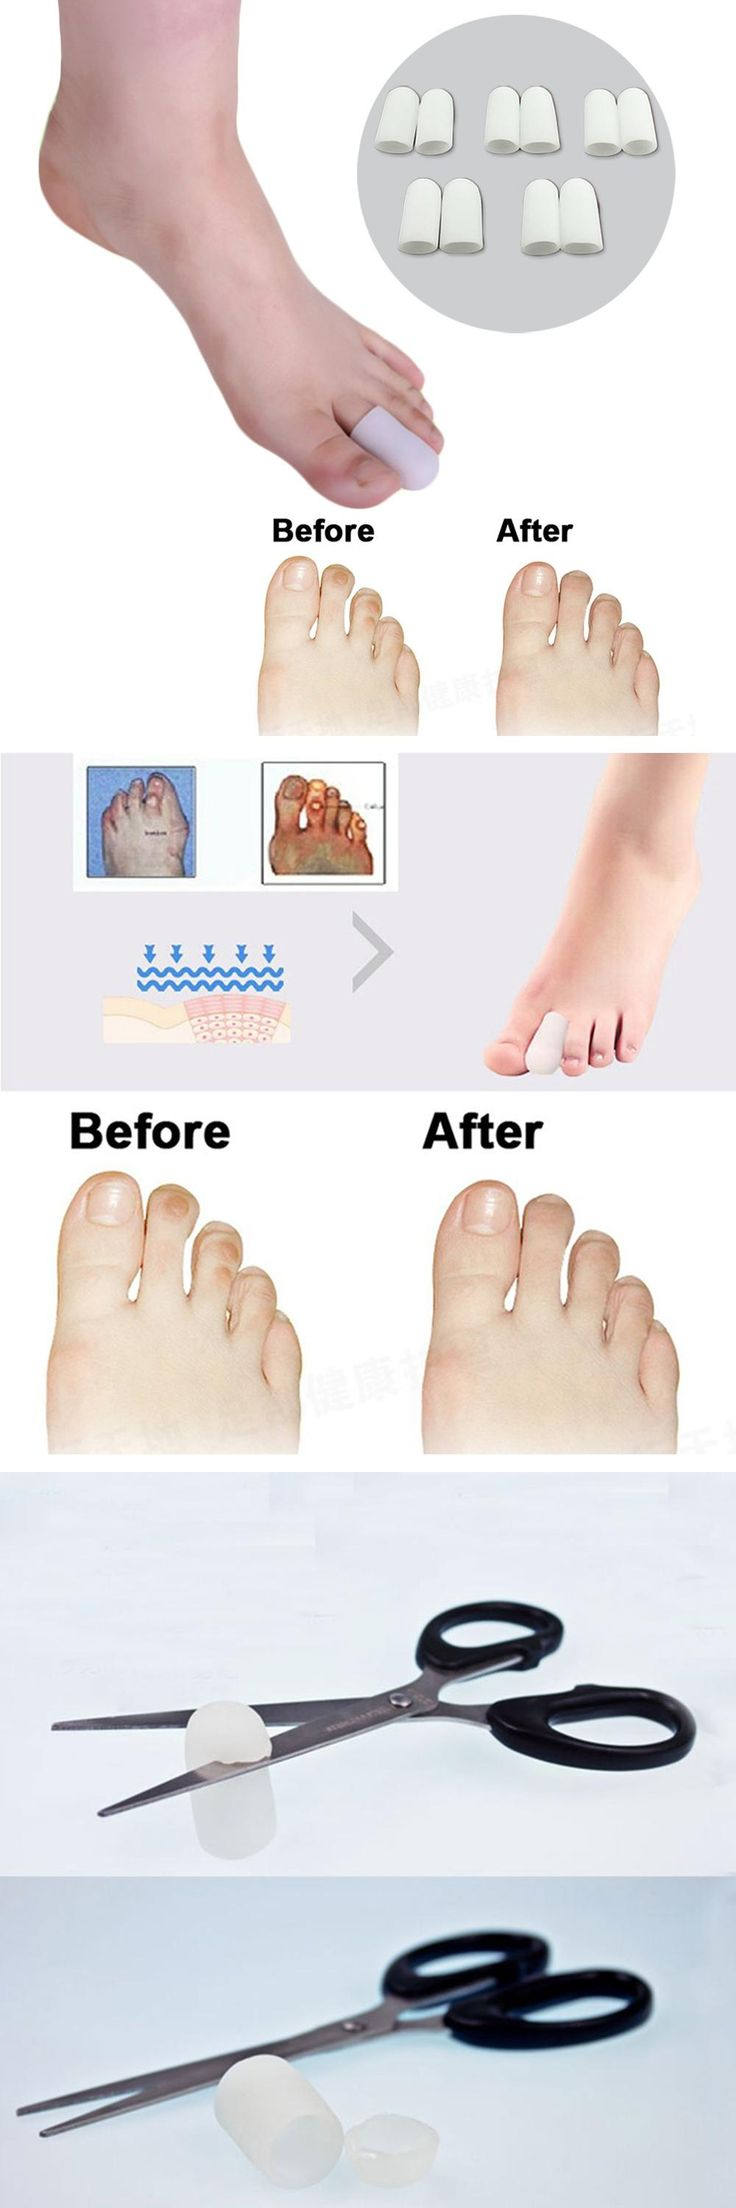 [Visit to Buy] 10pcs Toe Sleeves Toe Protectors for Bunions Sore Corns Calluses Prevent Corn Callus Blister Soften and Soothe the Skin S002 #Advertisement